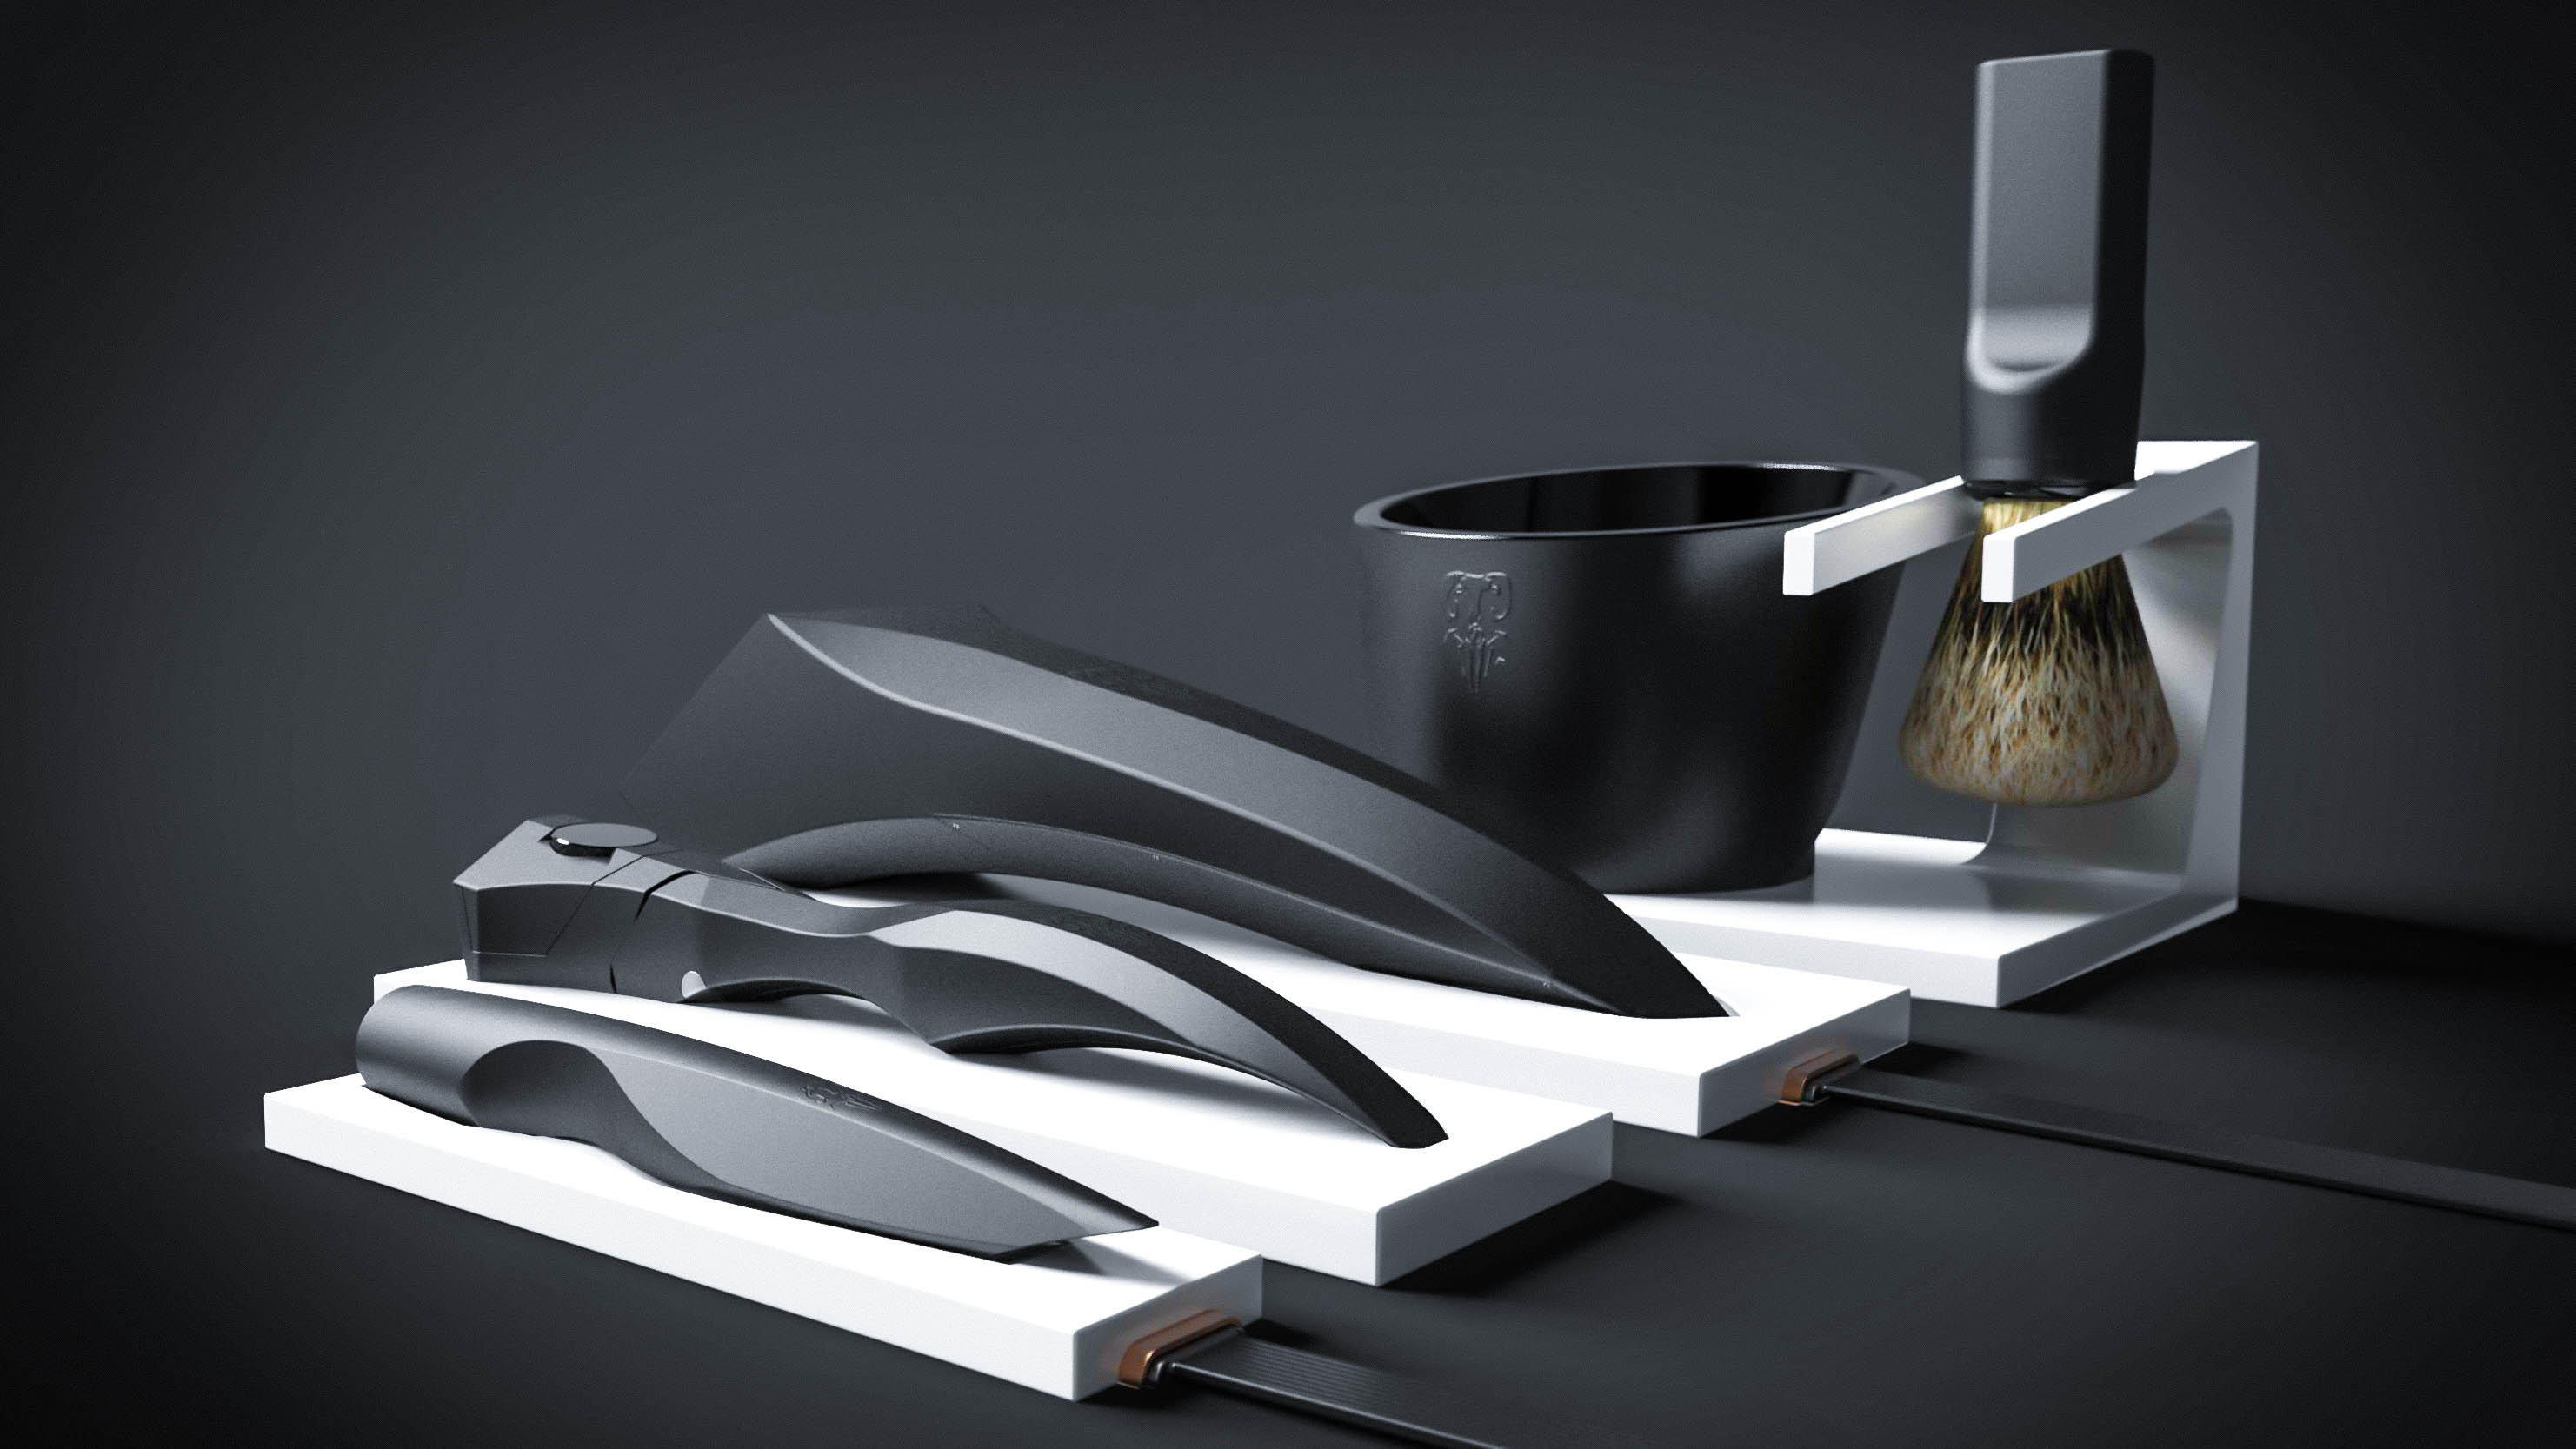 The products are designed to be displayed on countertops, and their bases help to unify the series.